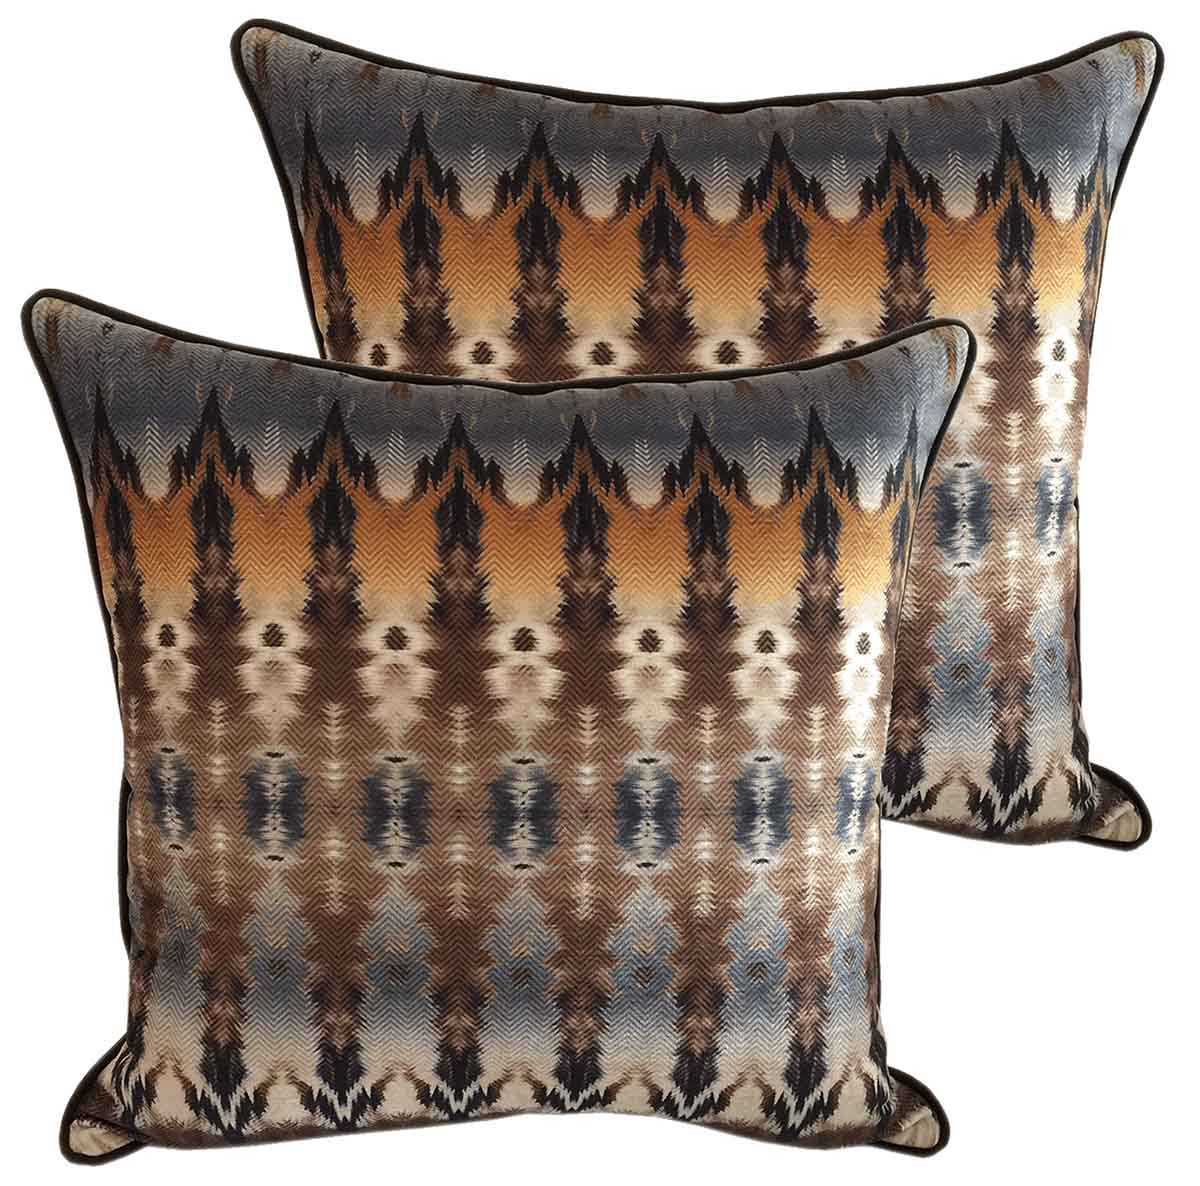 Boho Chic Pillows - Set Of 2